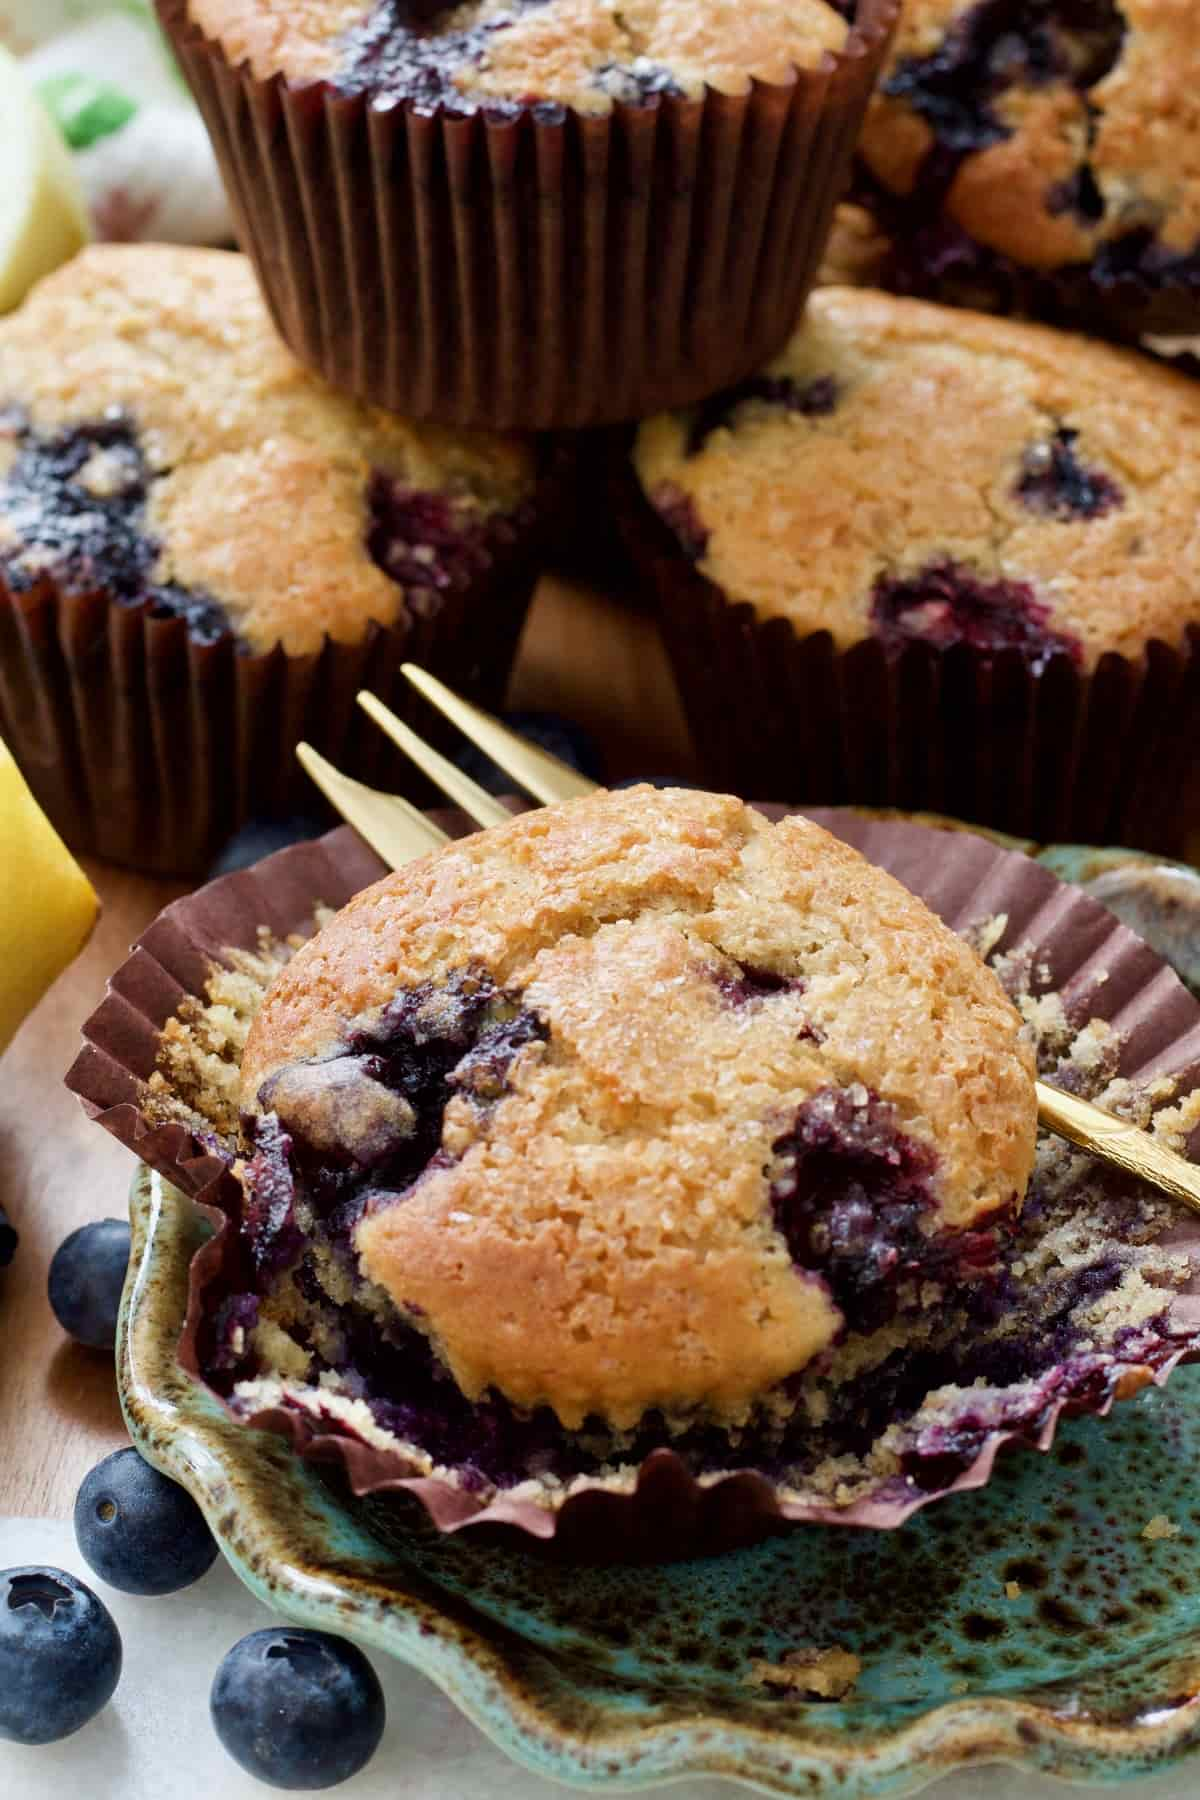 Blueberry muffin on a wrapper with a fork.